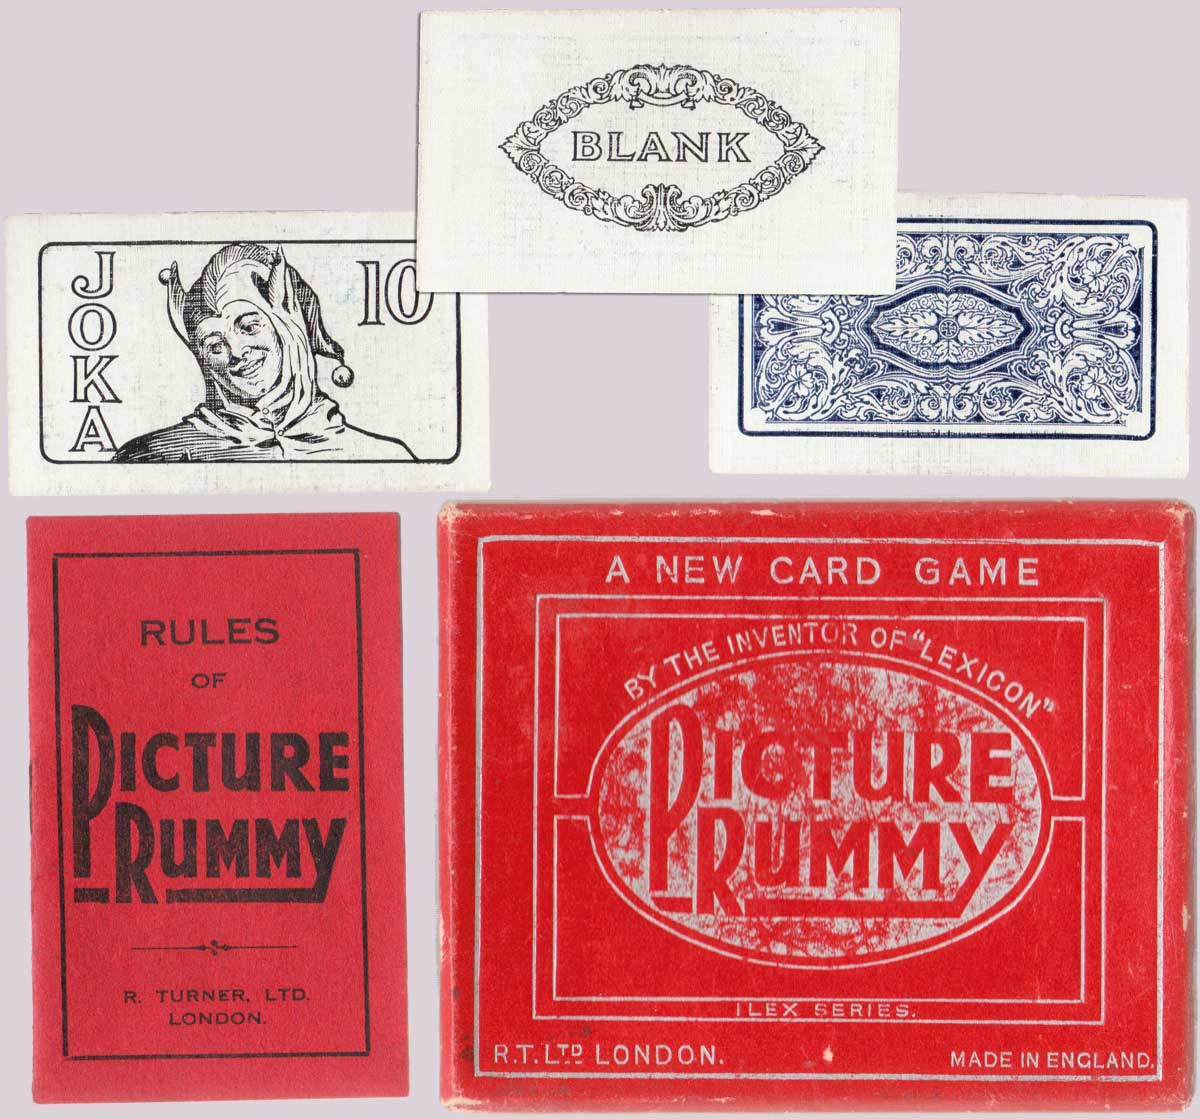 Picture Rummy by R. Turner Ltd, 2nd edition, 1937